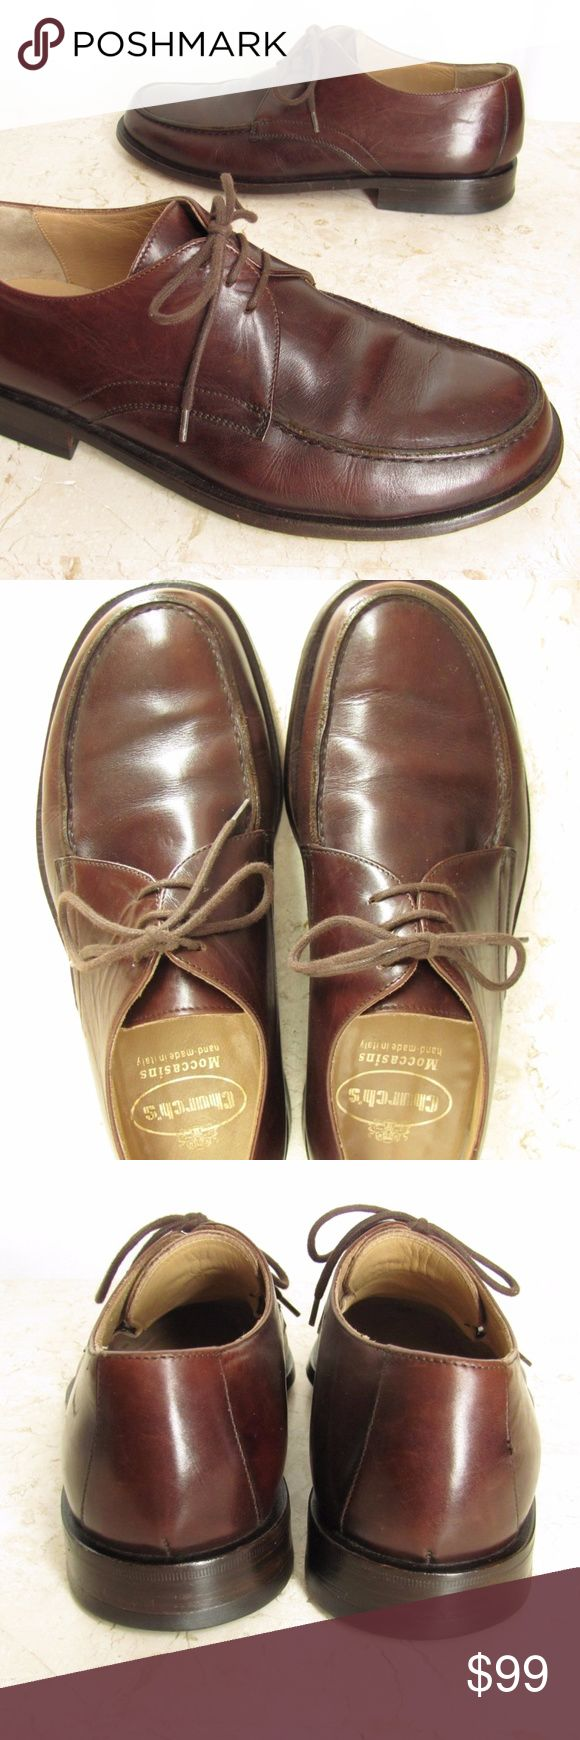 "Church's Mens Oxford Shoes 7.5 C Brown Leather Handsome Church's handmade Italian shoes in mens size 7.5 C. These fine designer brown leather oxford shoes have leather everywhere the foot touches. They have leather soles and non slip heels. Part of the Prada group of fine footwear. Retailing for $490 Euro.   A tape measure laid on the insole measures about:  10 1/2"" from the toe to the heel  3 3/8"" across the widest part of the ball of the foot  1"" heel height  Ship Size: pria 170717-214-Mns…"